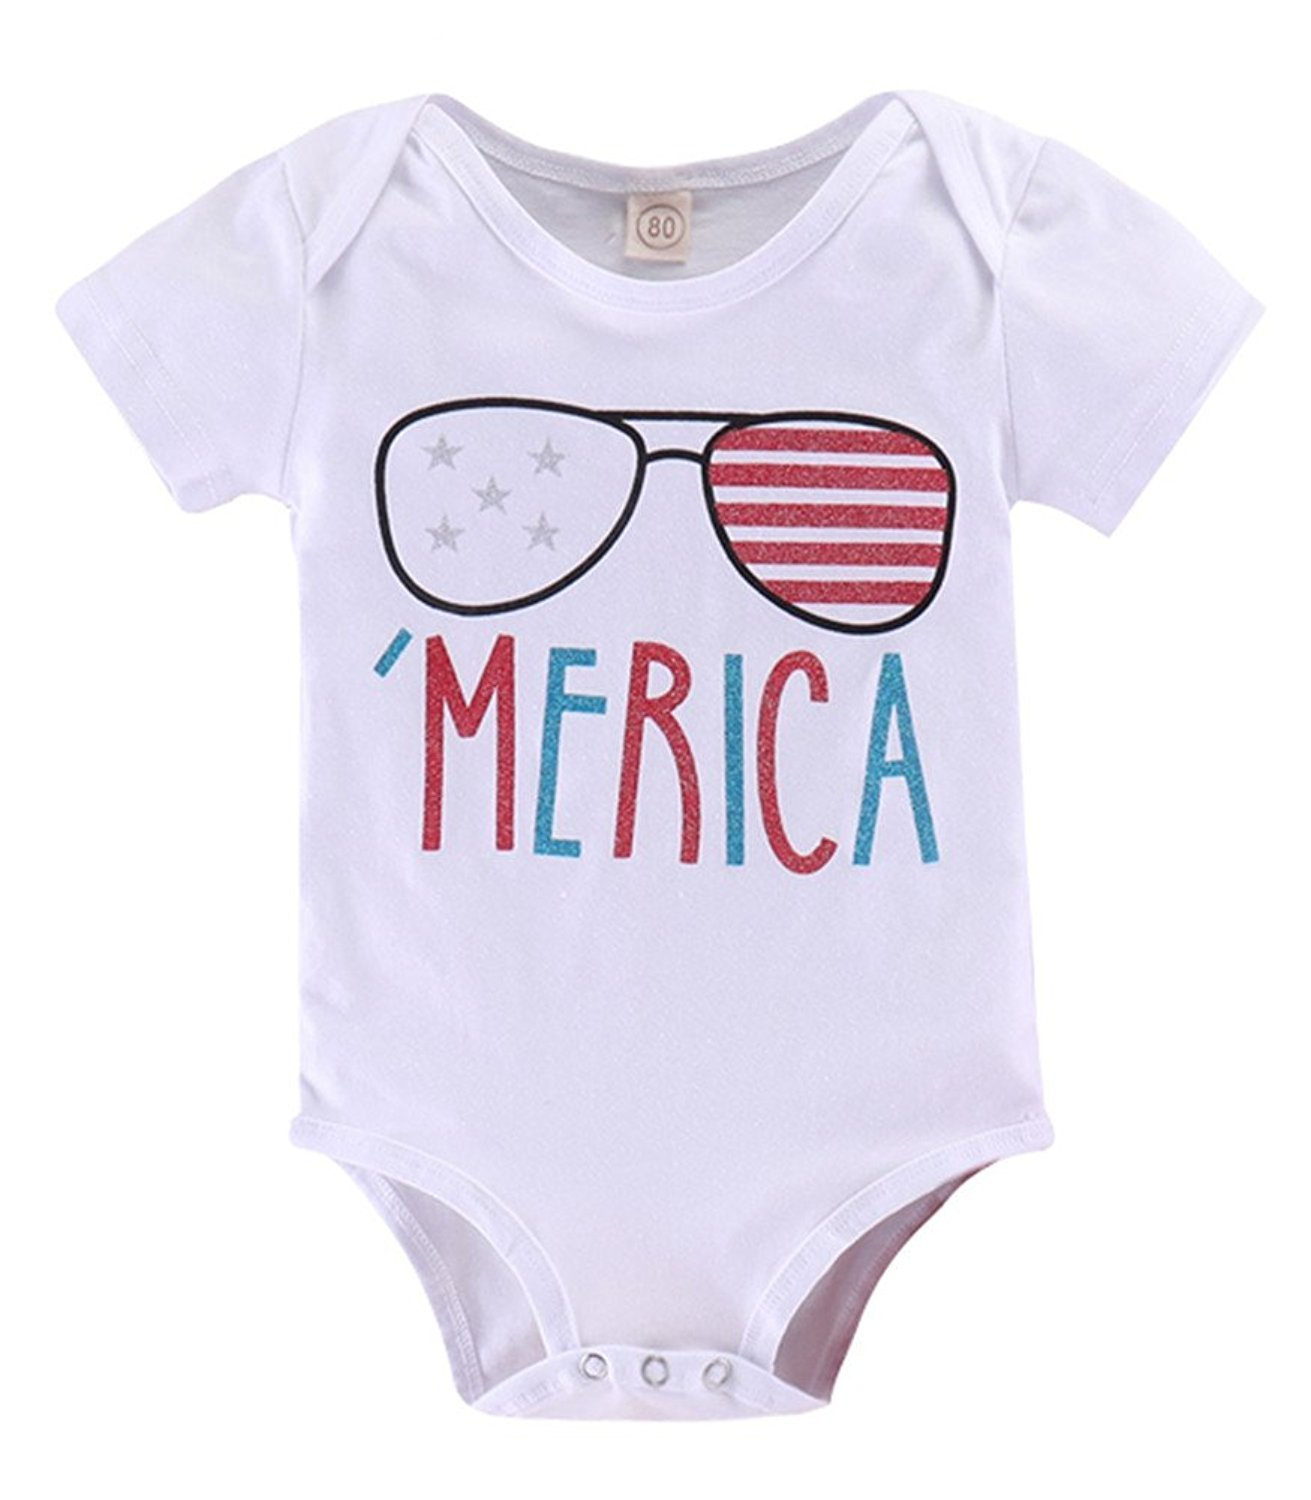 UNIQUEONE 4th of July Toddler Baby Boys Girls Glasses America Romper Short Sleeve Jumpsuit Size 6-12 Months/Tag80 (White) by UNIQUEONE